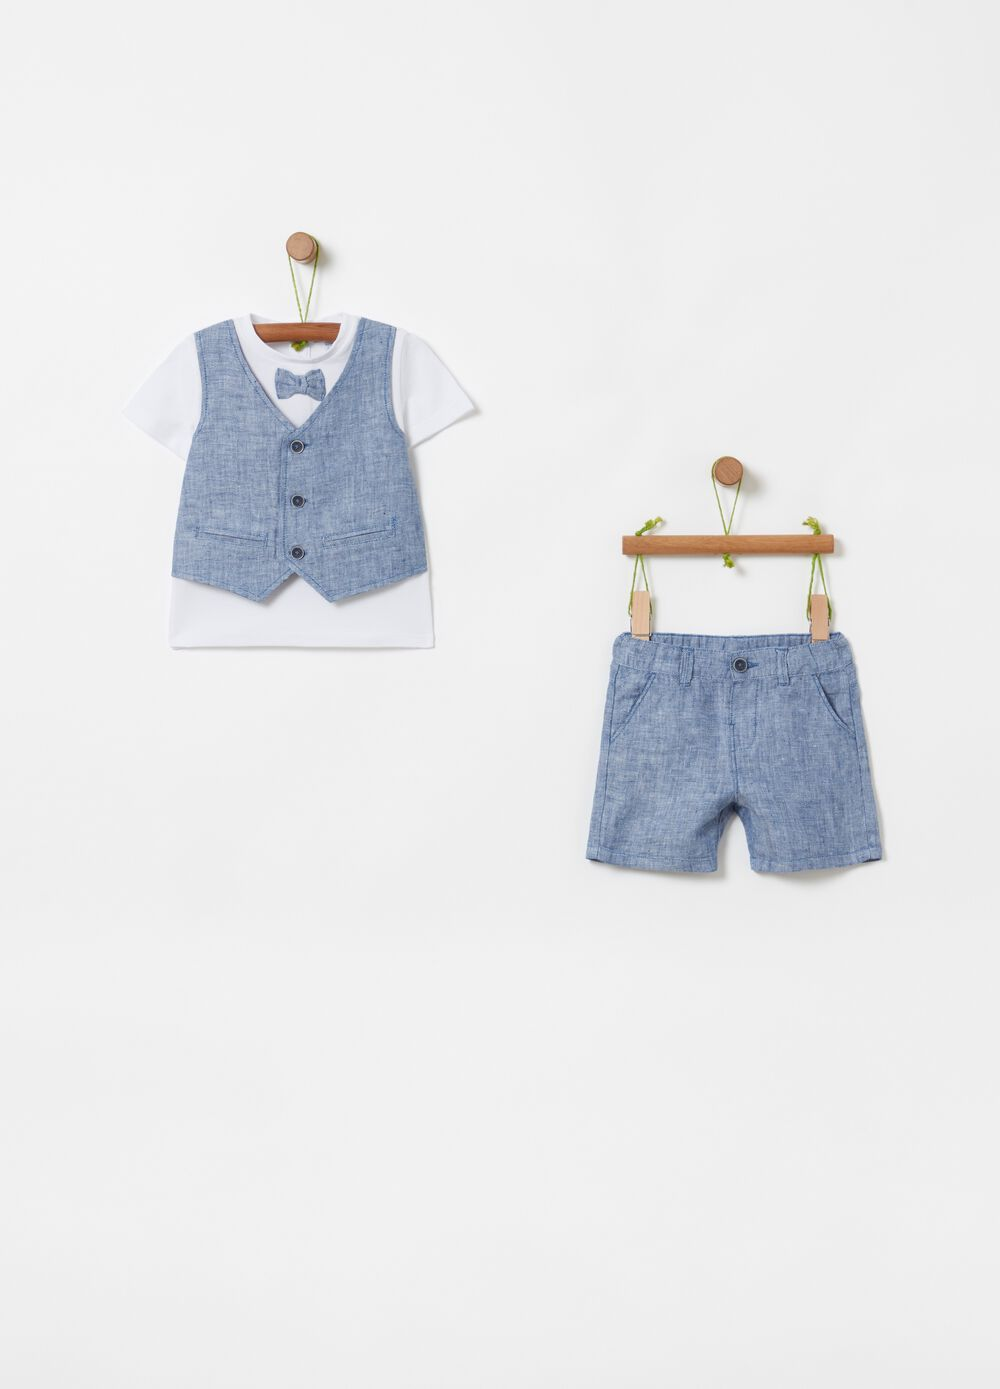 T-shirt with gilet and shorts set